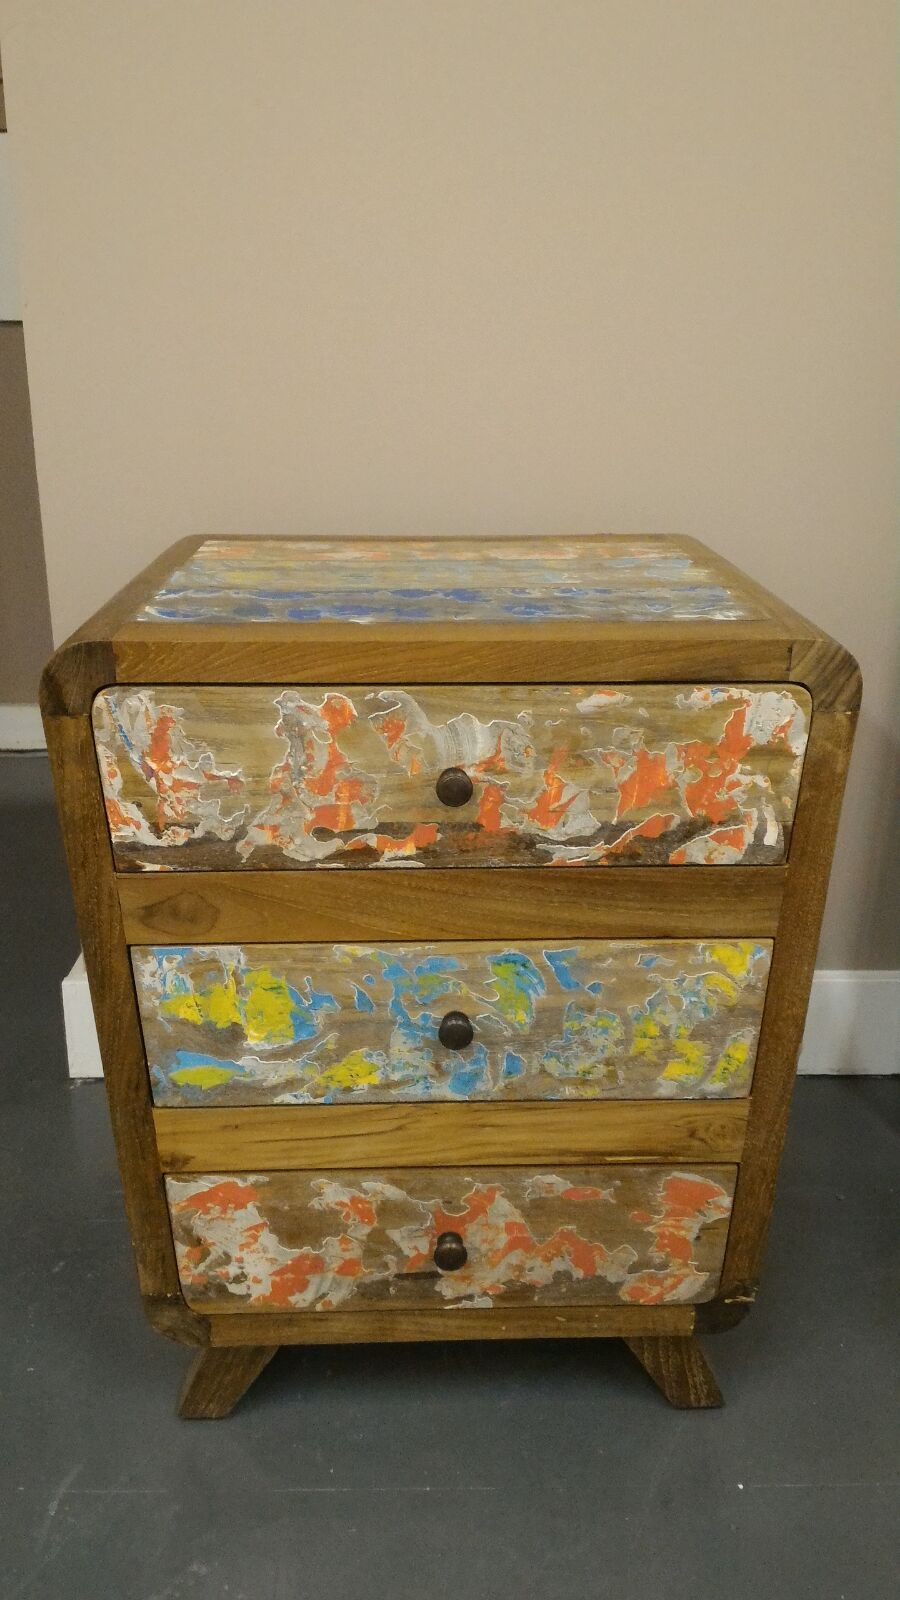 Reclaimed Boat Wood 3-Drawer Night Stand, Cabinet, End Table, Bedside Dresser, Office Cabinet